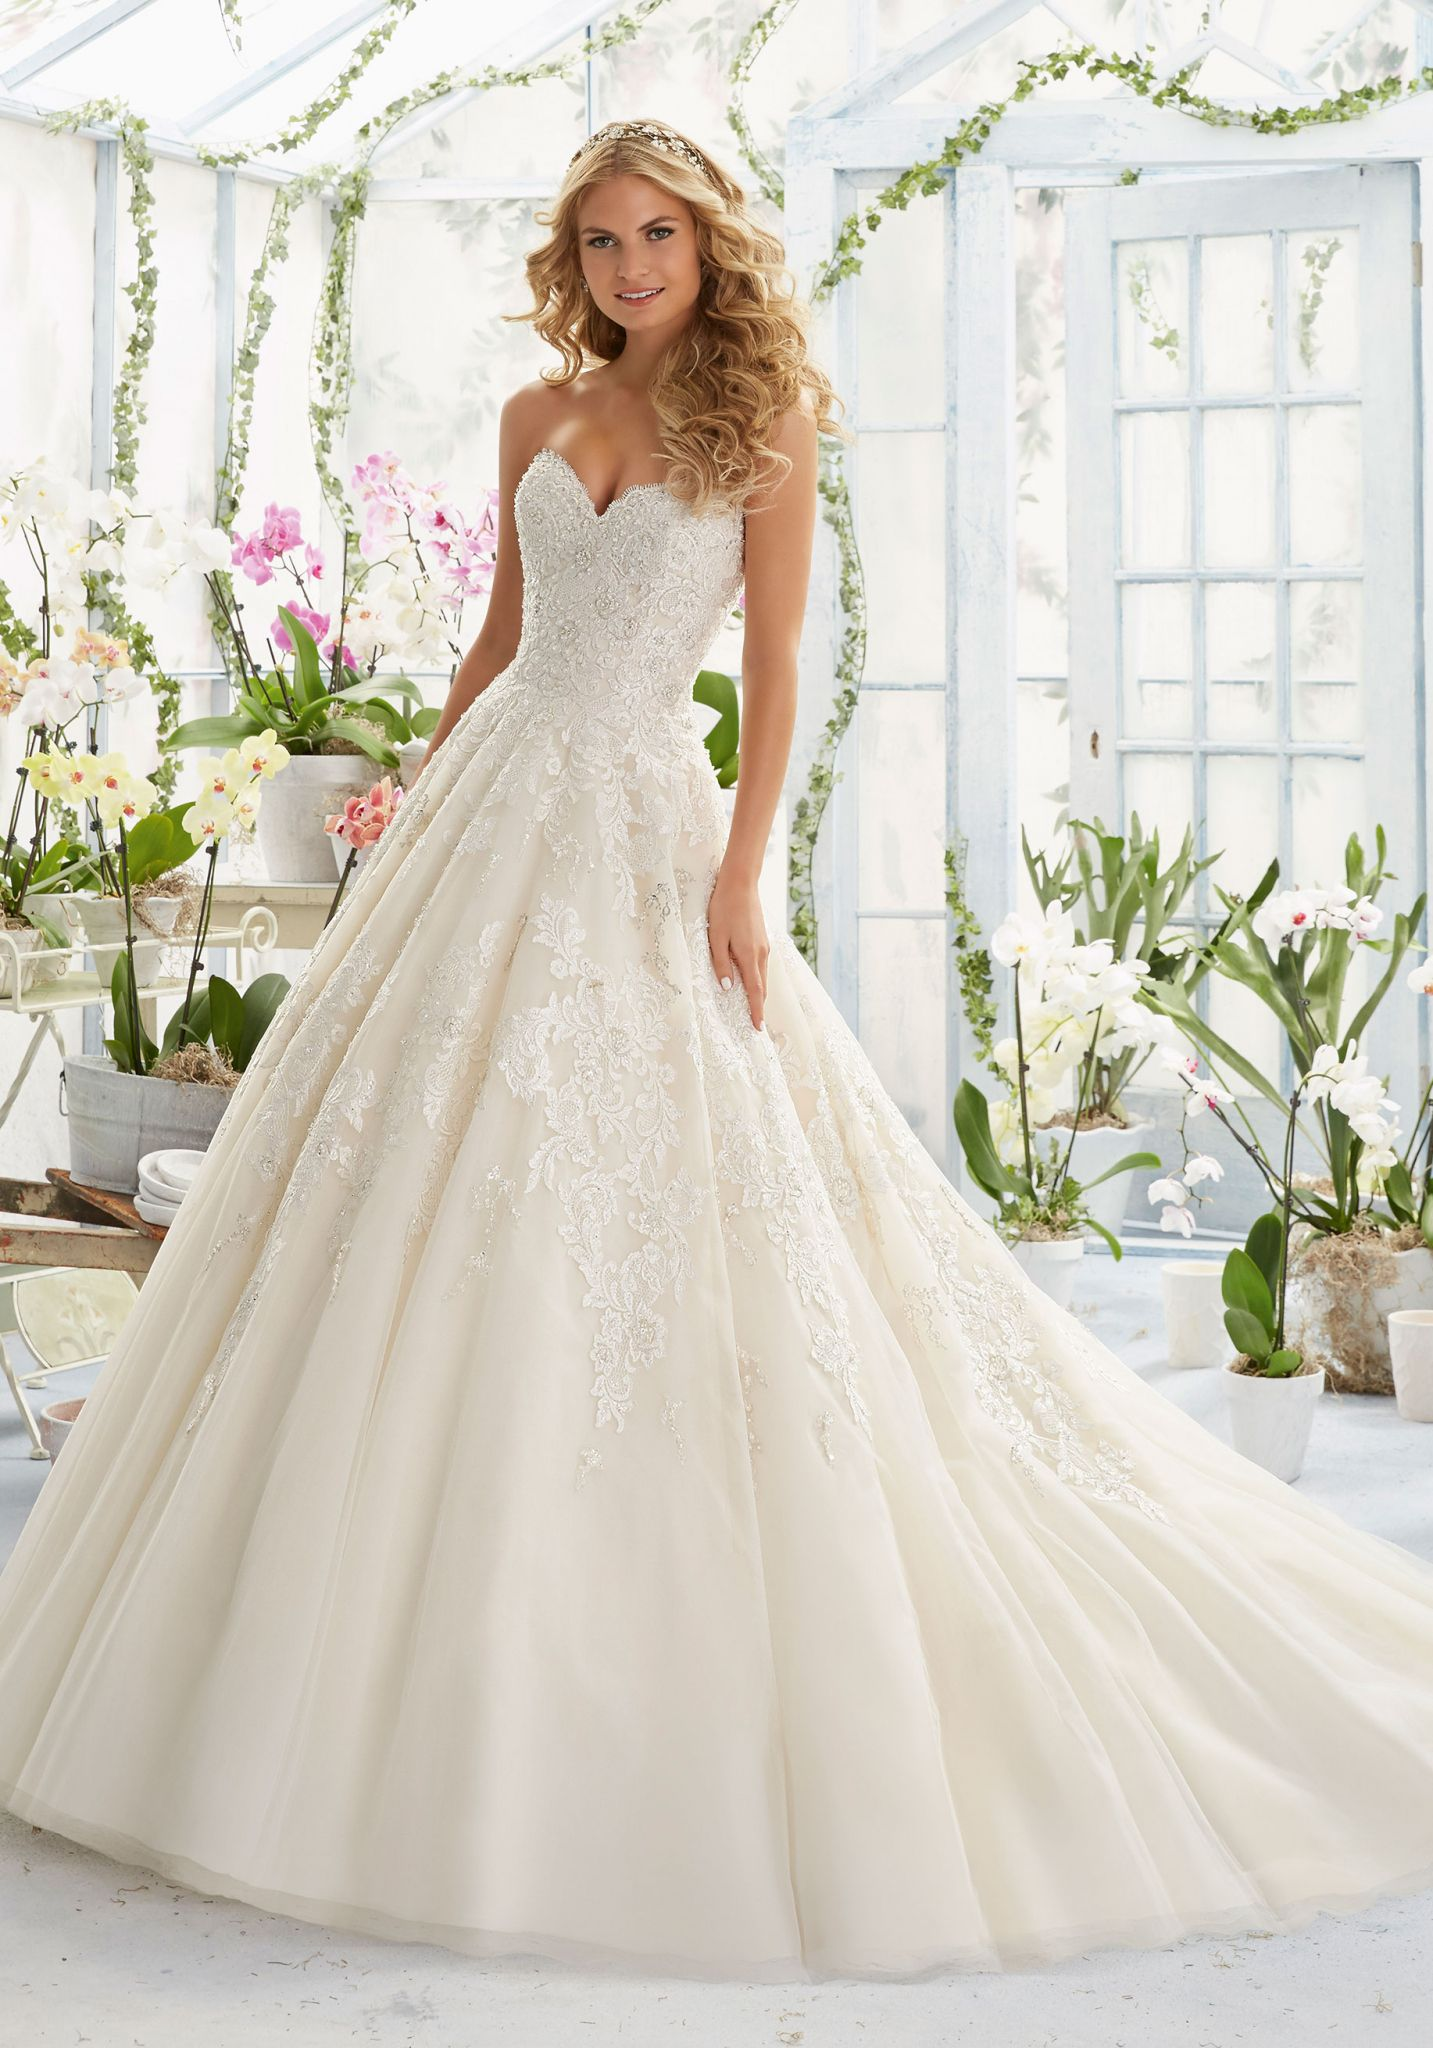 Clic And Elegant Wedding Dresses Country For Weddings Check More At Http